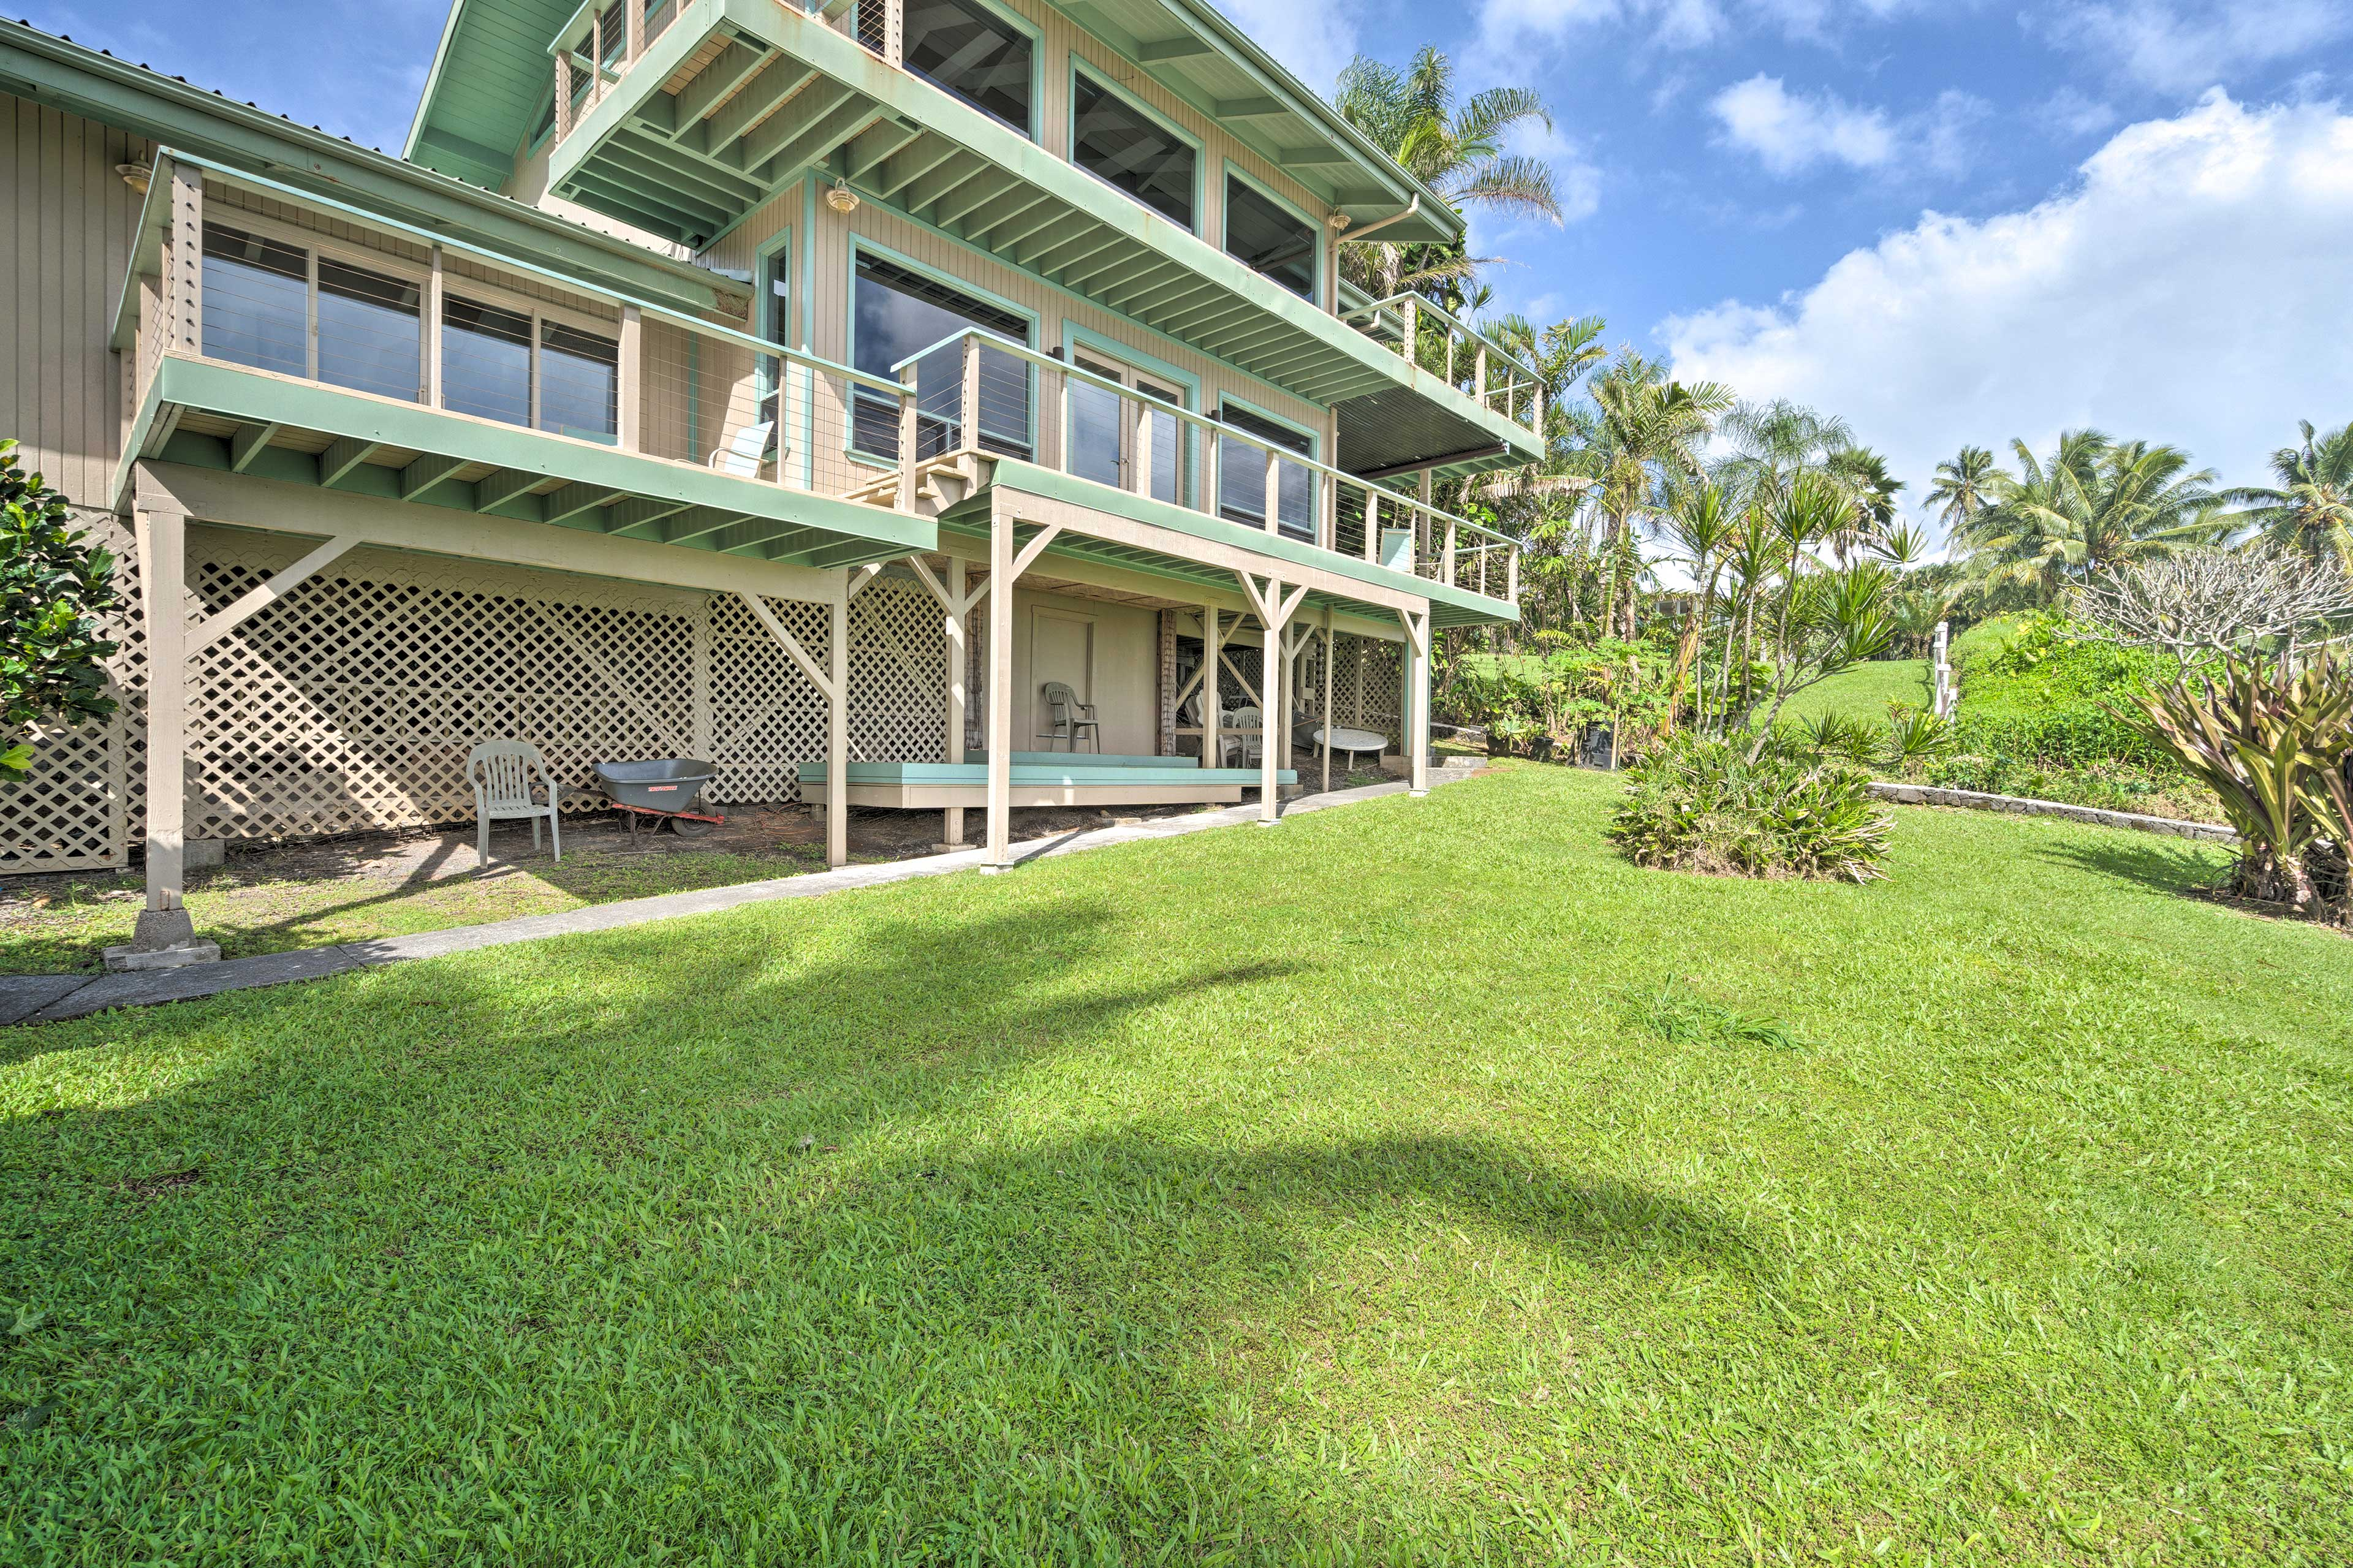 The property is beautifully landscaped with native and non native vegitation.